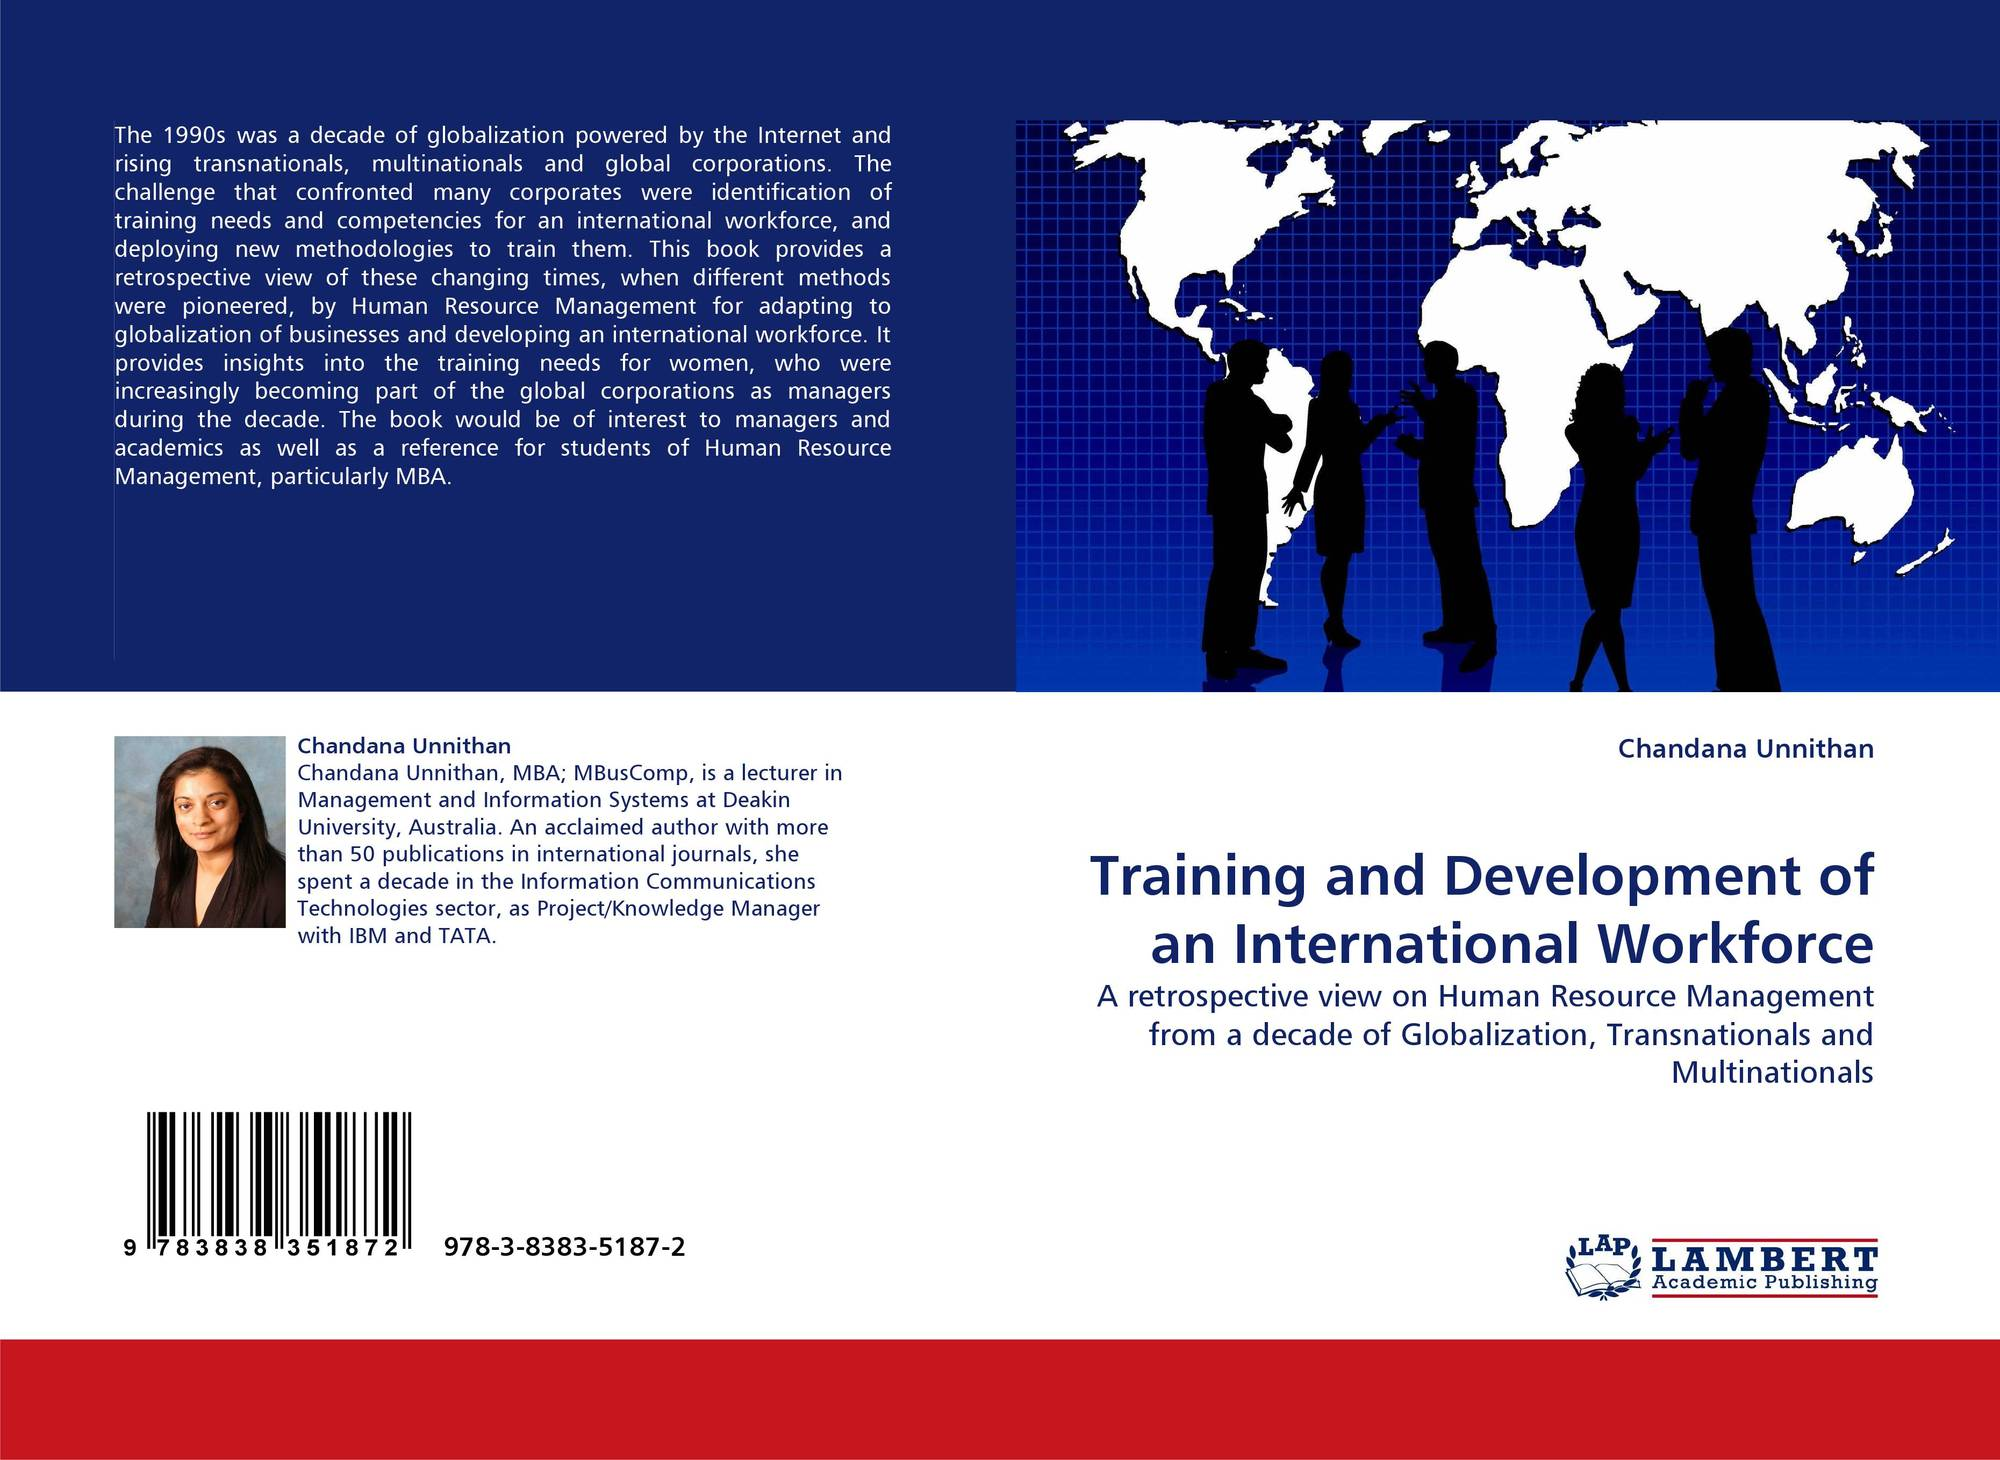 international training and development Development training international (dti) is a regional organization within sadc and headquartered in the kingdom of swaziland as a full member of sadc, swaziland holds the protocol as the destination of training for all member states within the region.